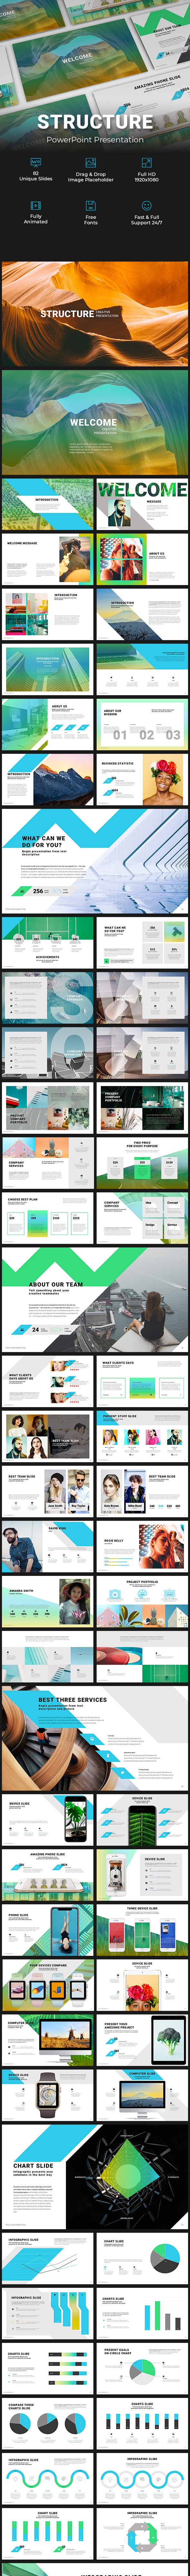 Structure PowerPoint Presentation - PowerPoint Templates Presentation Templates